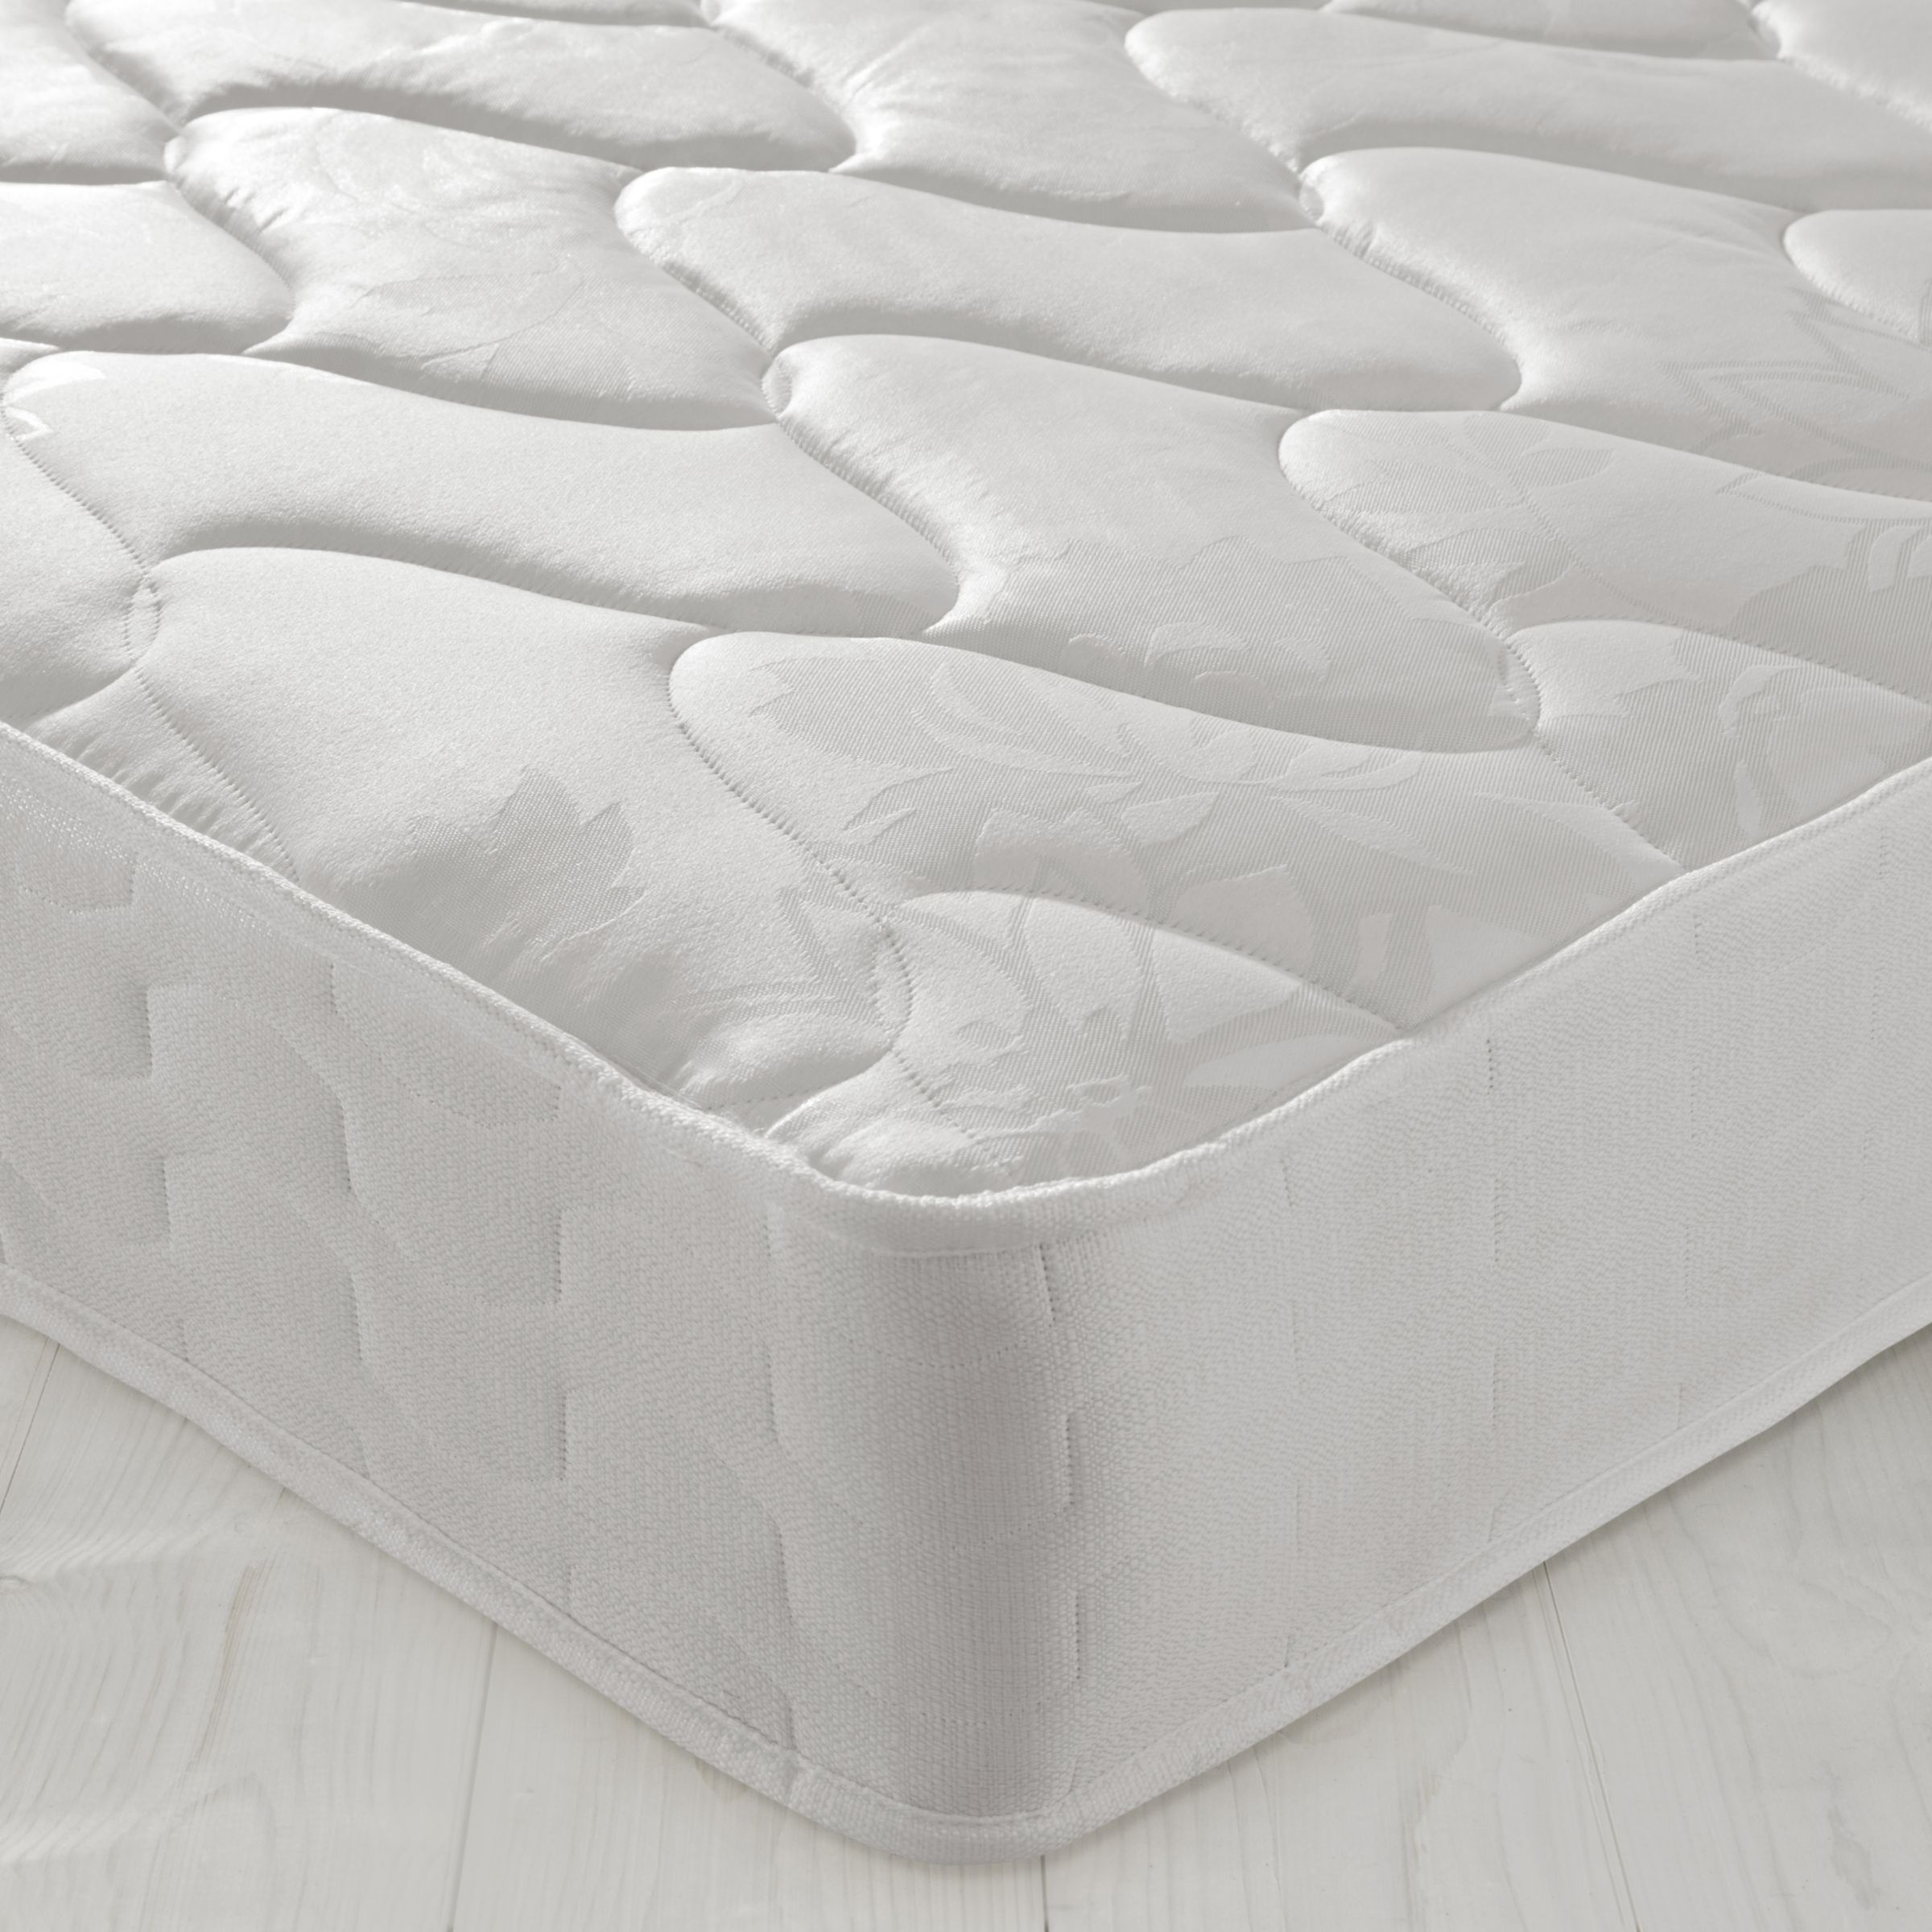 Silentnight Comfort Miracoil Mattress, Double